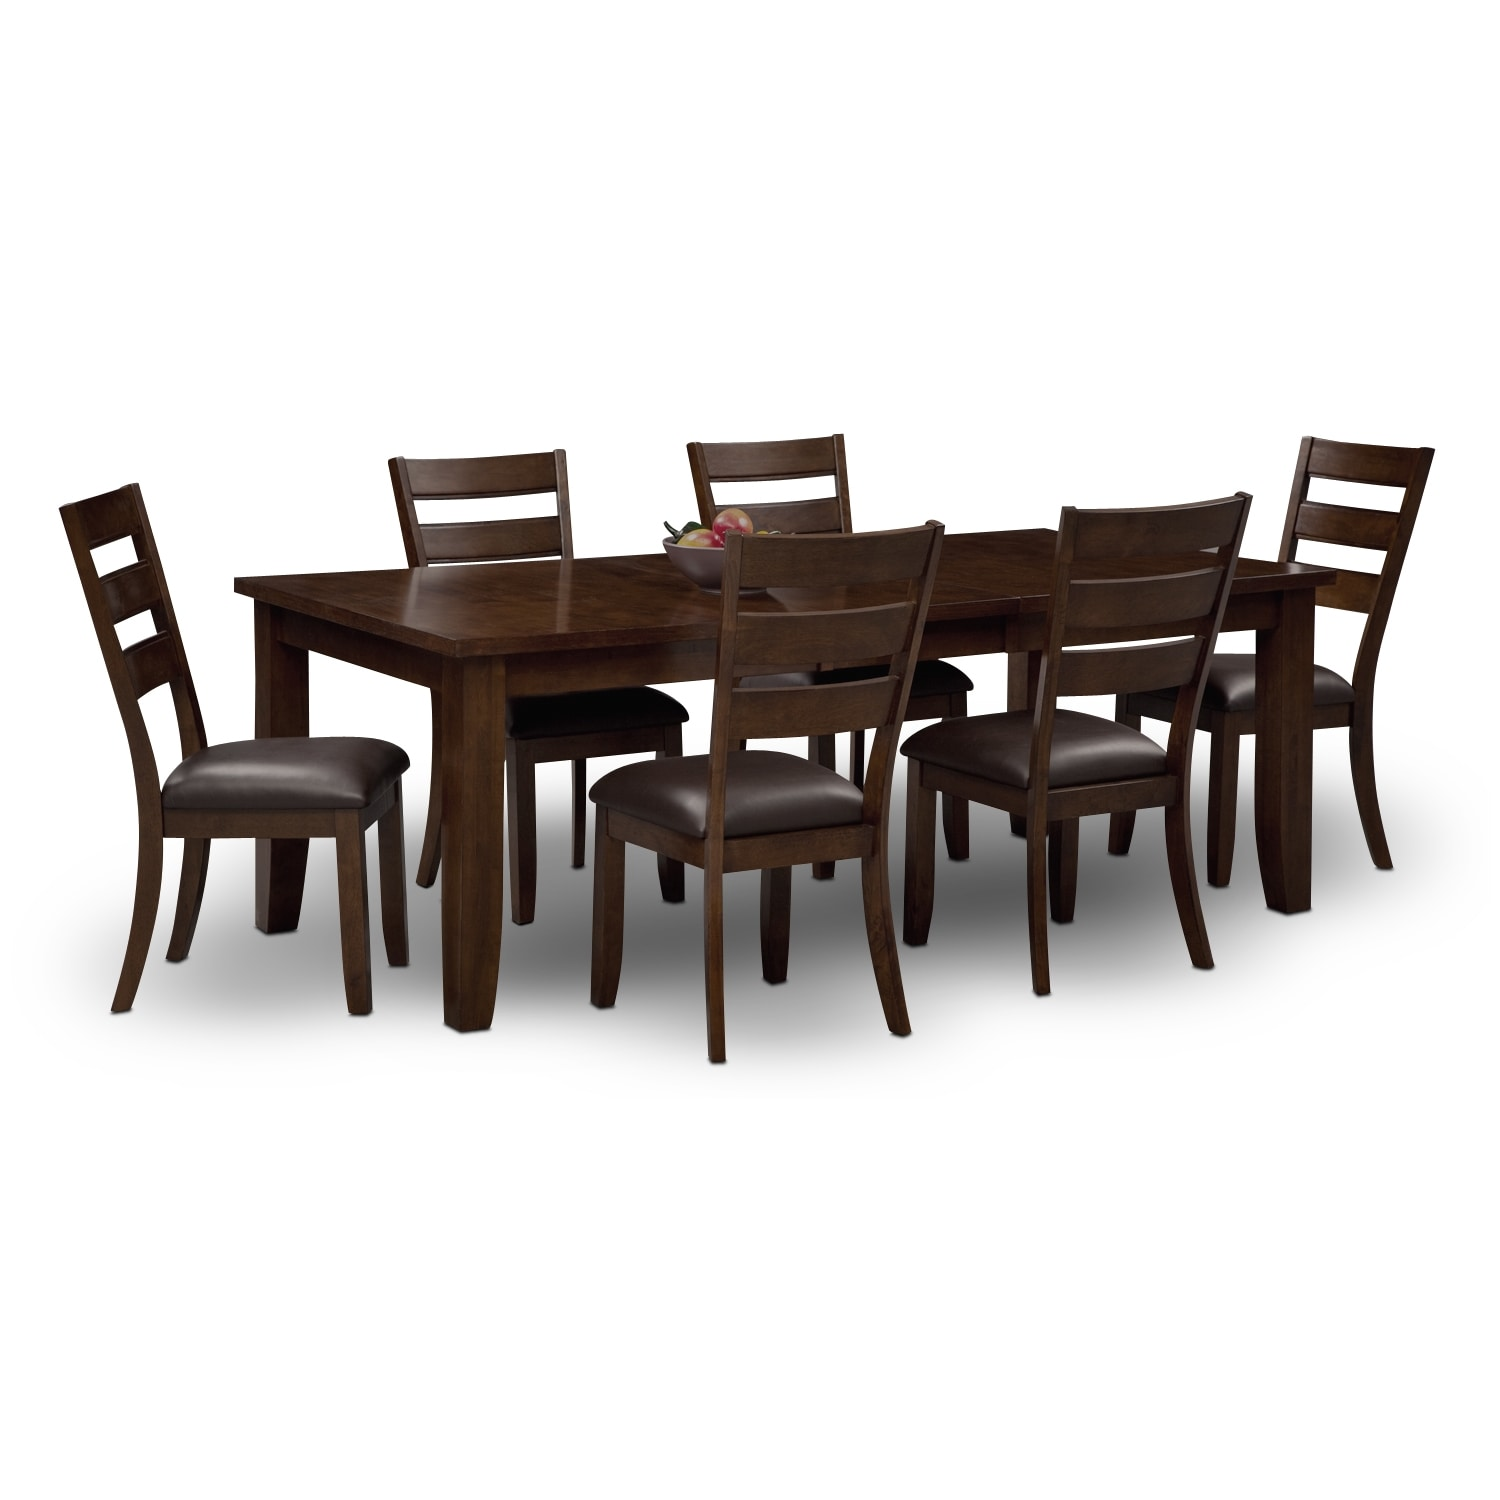 Abaco 7 pc dining room value city furniture for Dining room furniture images